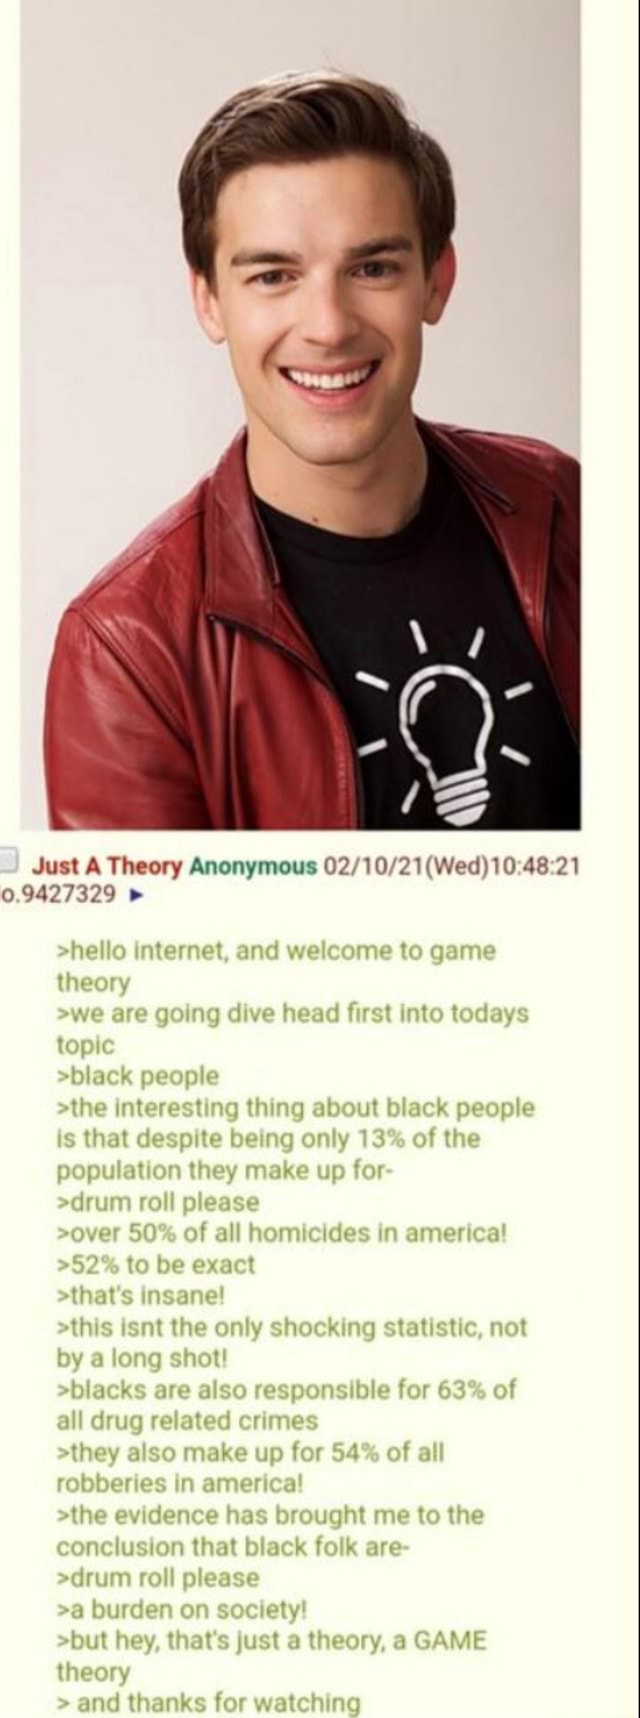 Just A Theory Anonymous 0.9427329 hello internet, and welcome to game theory we are going dive head first into todays topic black people the interesting thing about black people is that despite being only 13% of the population they make up for drum roll please over 50% of all homicides in america to be exact that's insane  this isnt the only shocking statistic, not by a long shot  blacks are also responsible for 63% of all drug related crimes they also make up for 54% of all robberies in america the evidence has brought me to the conclusion that black folk are drum roll please burden on society but hey, that's just a theory, a GAME theory and thanks for watching memes